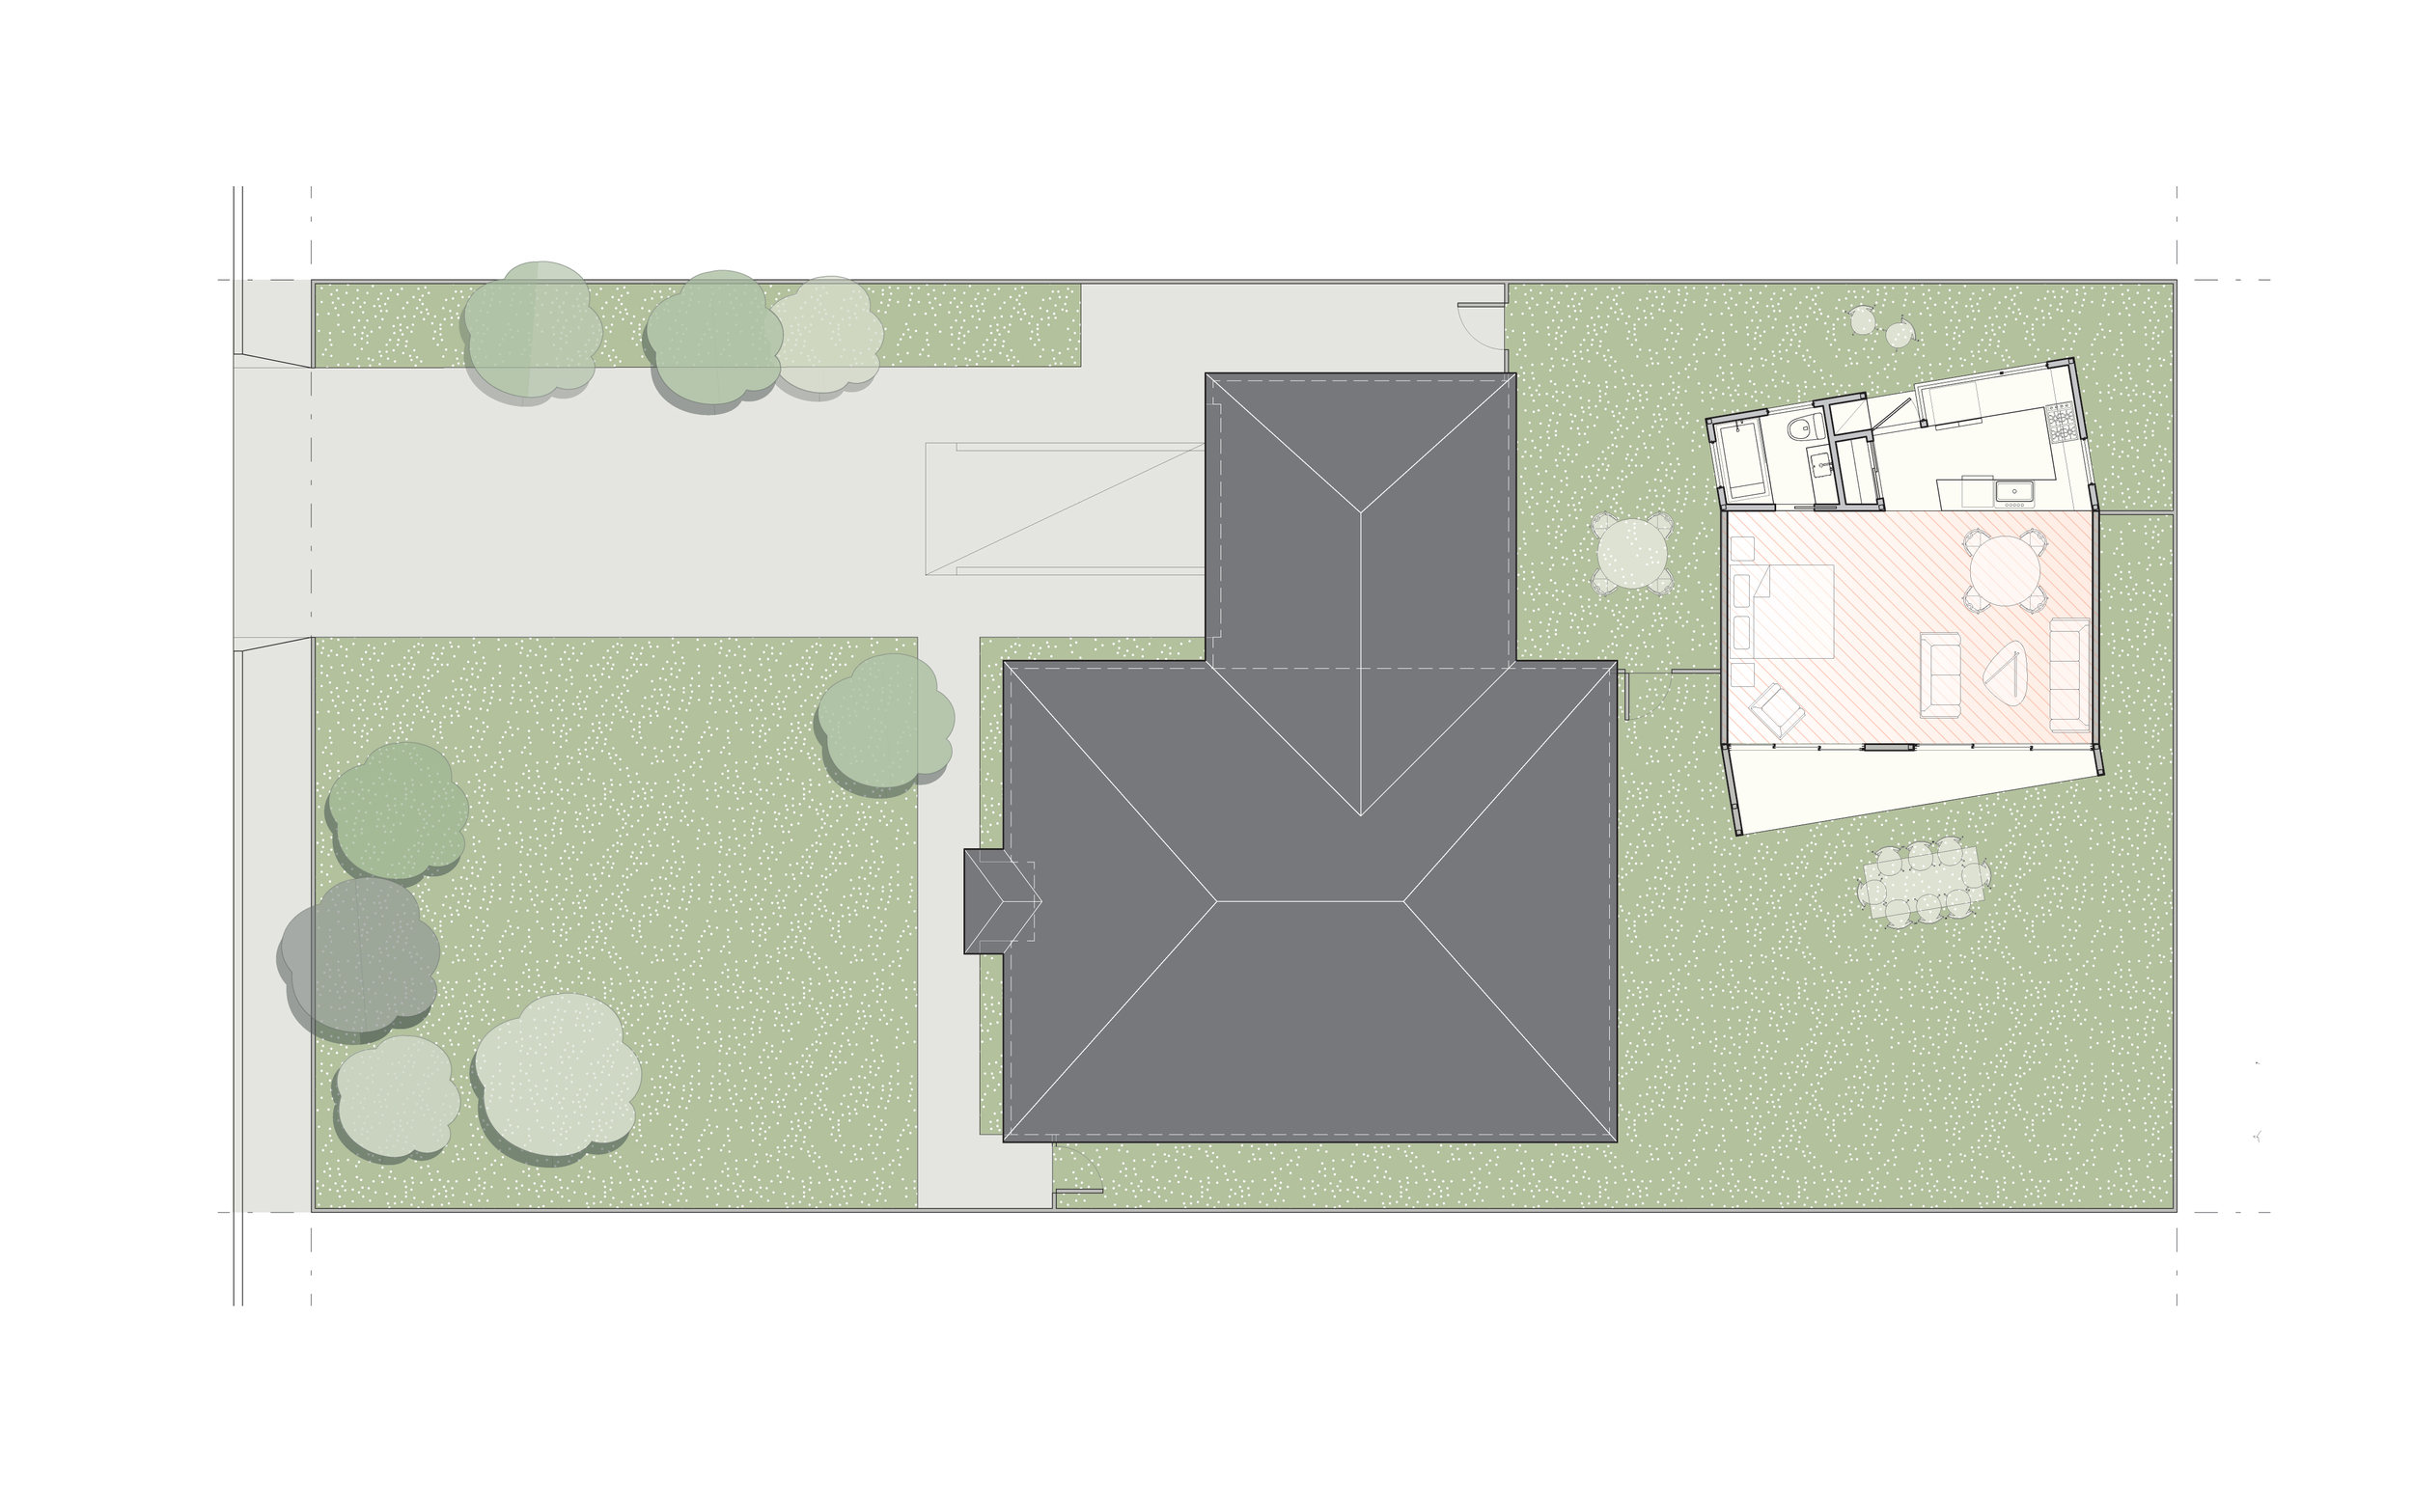 The site plan showing the single-story, studio scheme to the rear of an existing house.